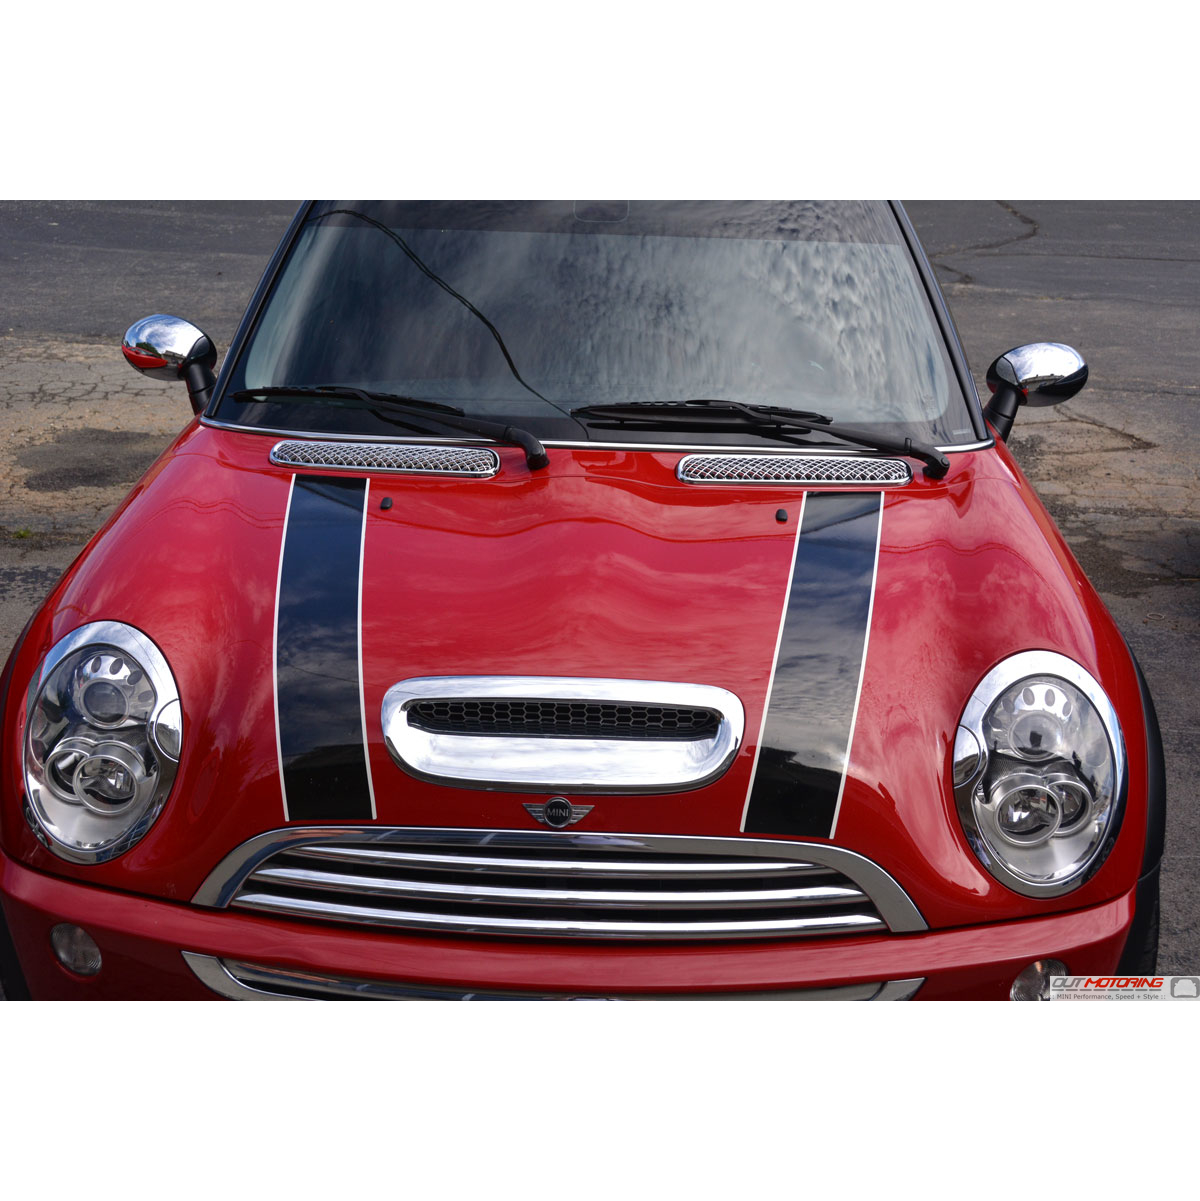 Mini cooper chrome vent covers mini cooper accessories mini cooper parts Mini cooper exterior accessories